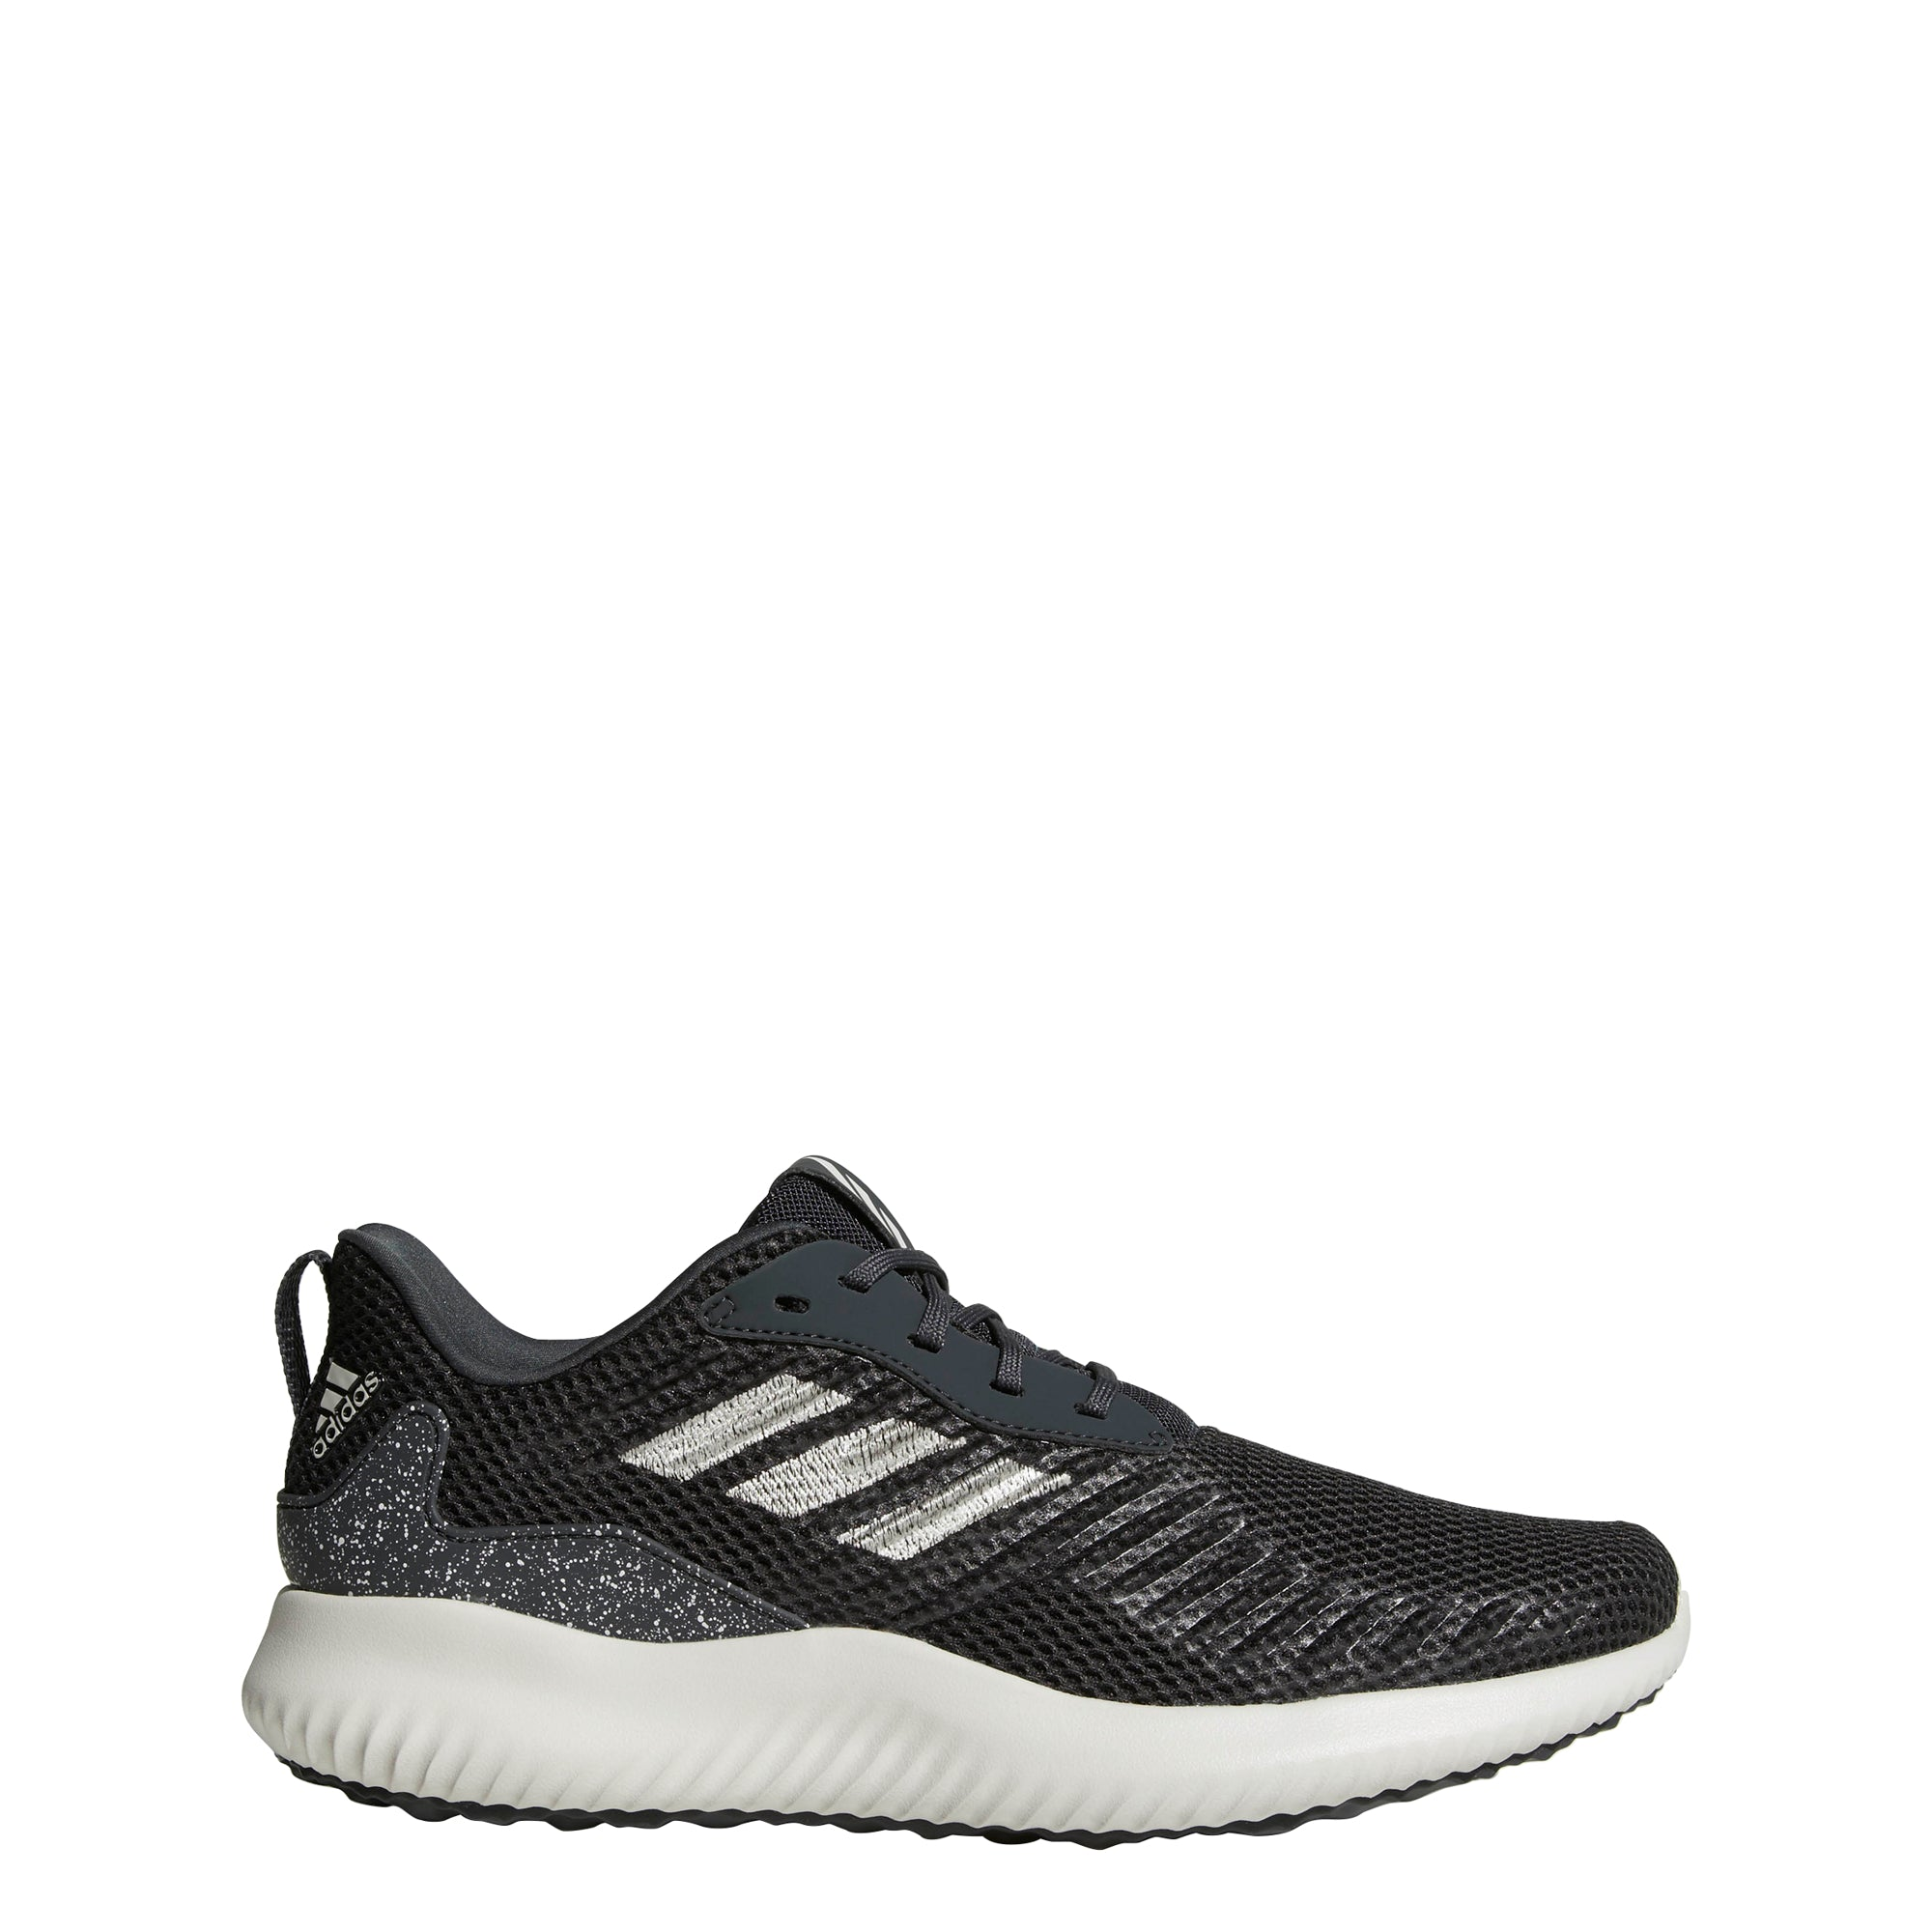 Buy Adidas Men alphabounce rc m Running Shoes, Grey/White in Singapore -  Royal Sporting House